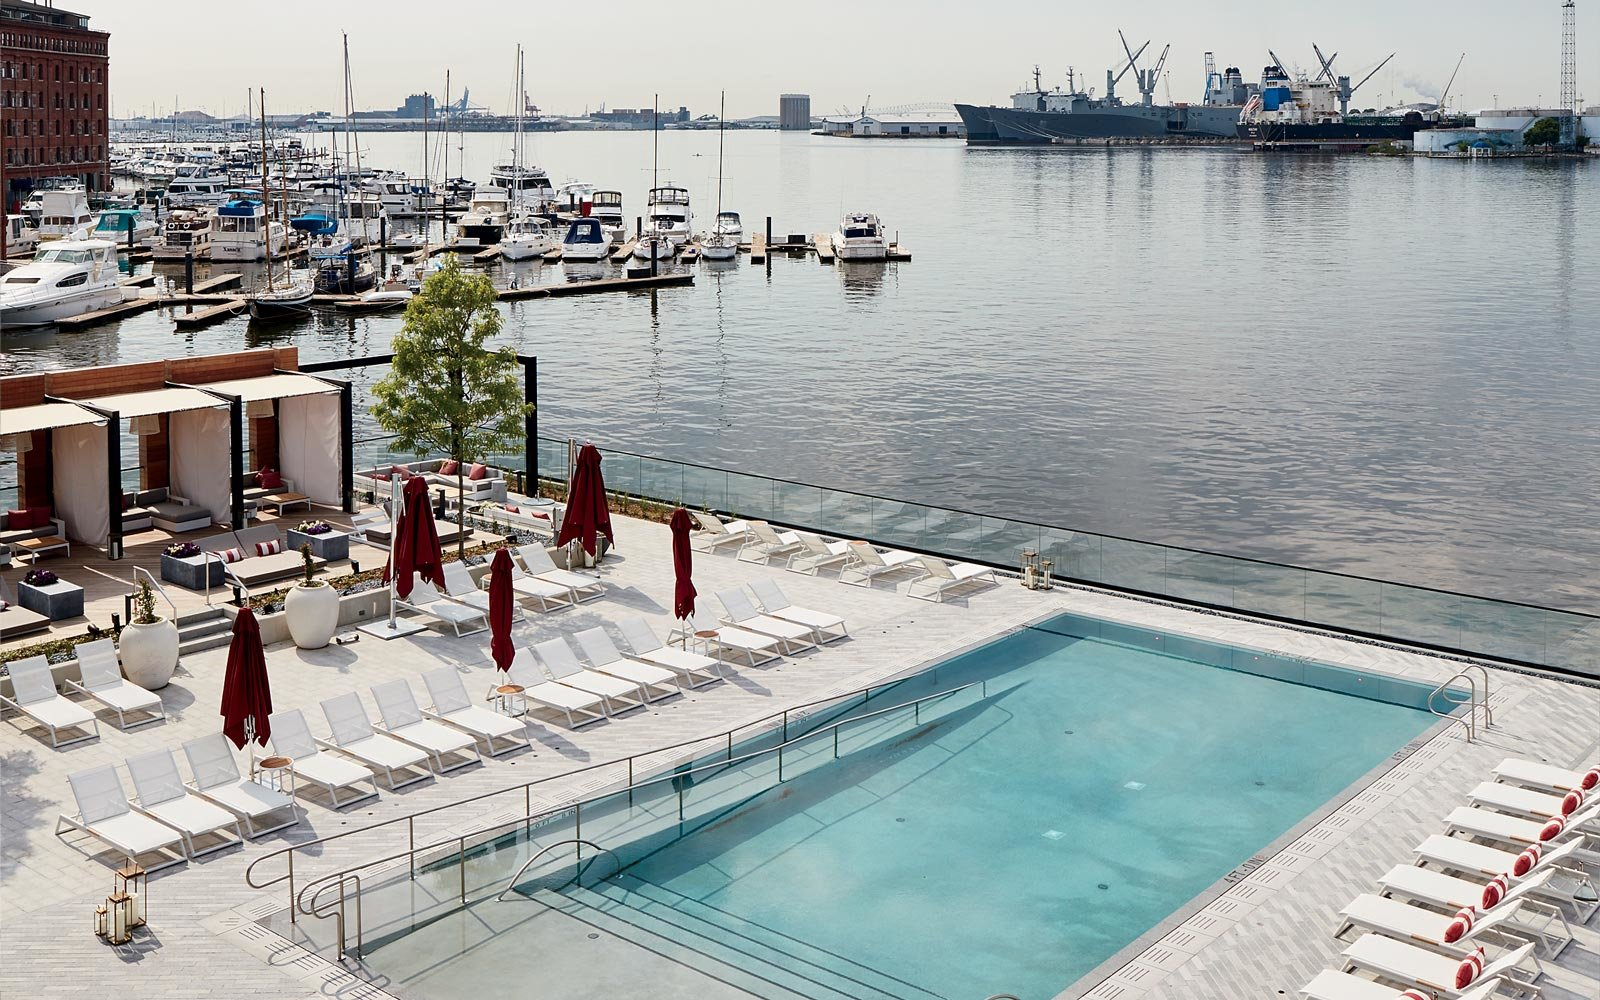 At the Sagamore Pendry Baltimore, the pool overlooks industry across the Patapsco River.